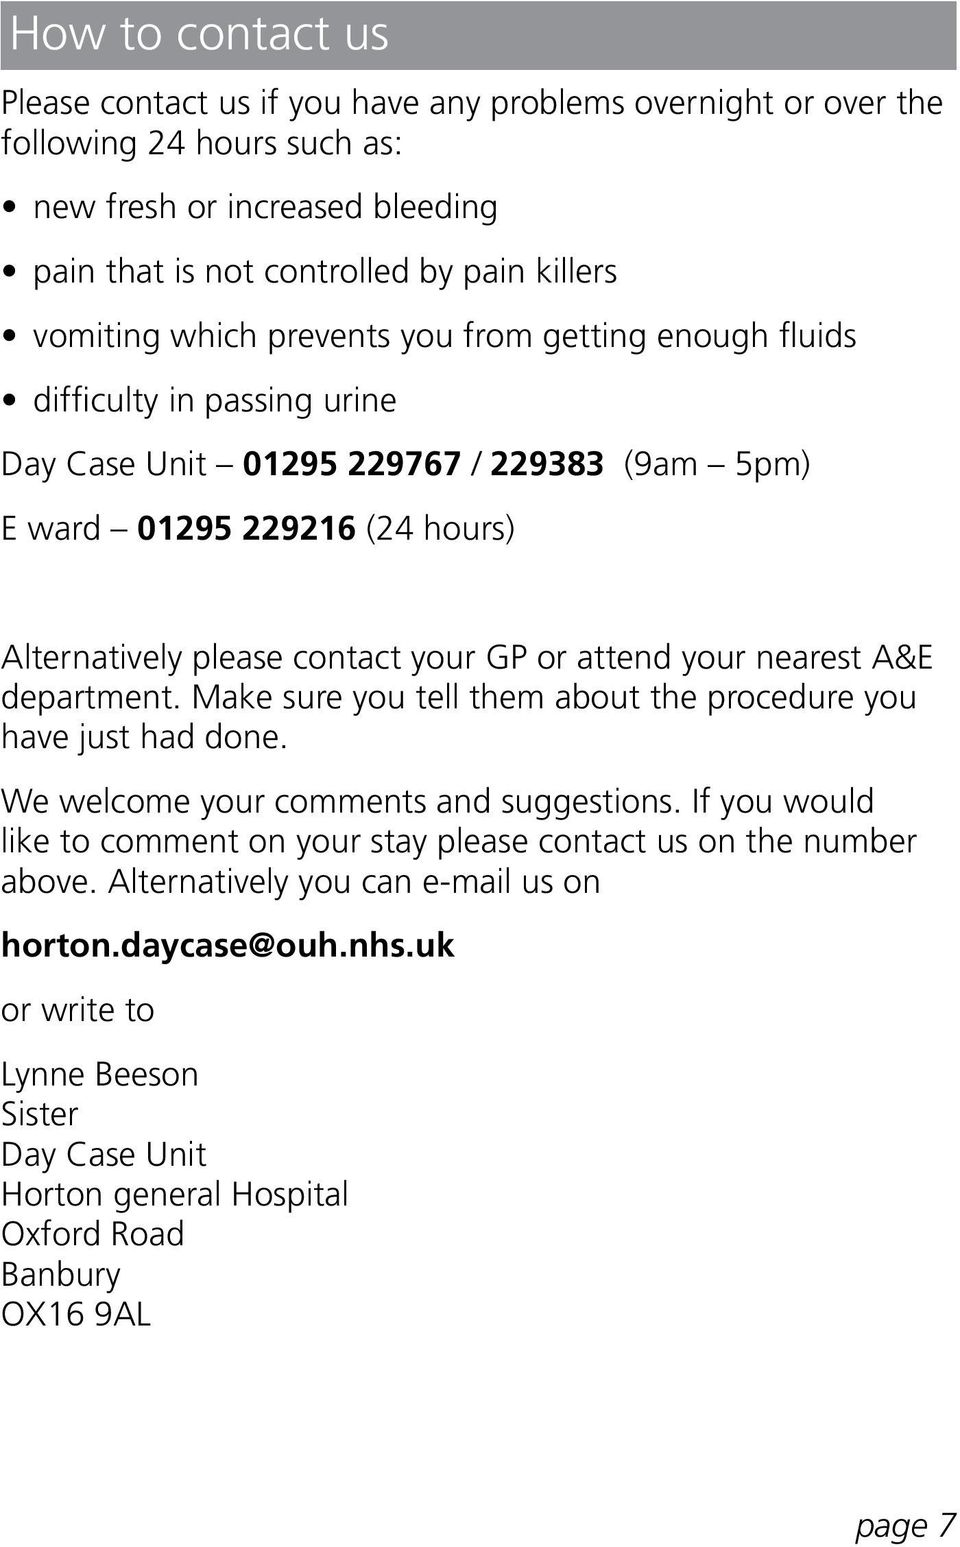 GP or attend your nearest A&E department. Make sure you tell them about the procedure you have just had done. We welcome your comments and suggestions.